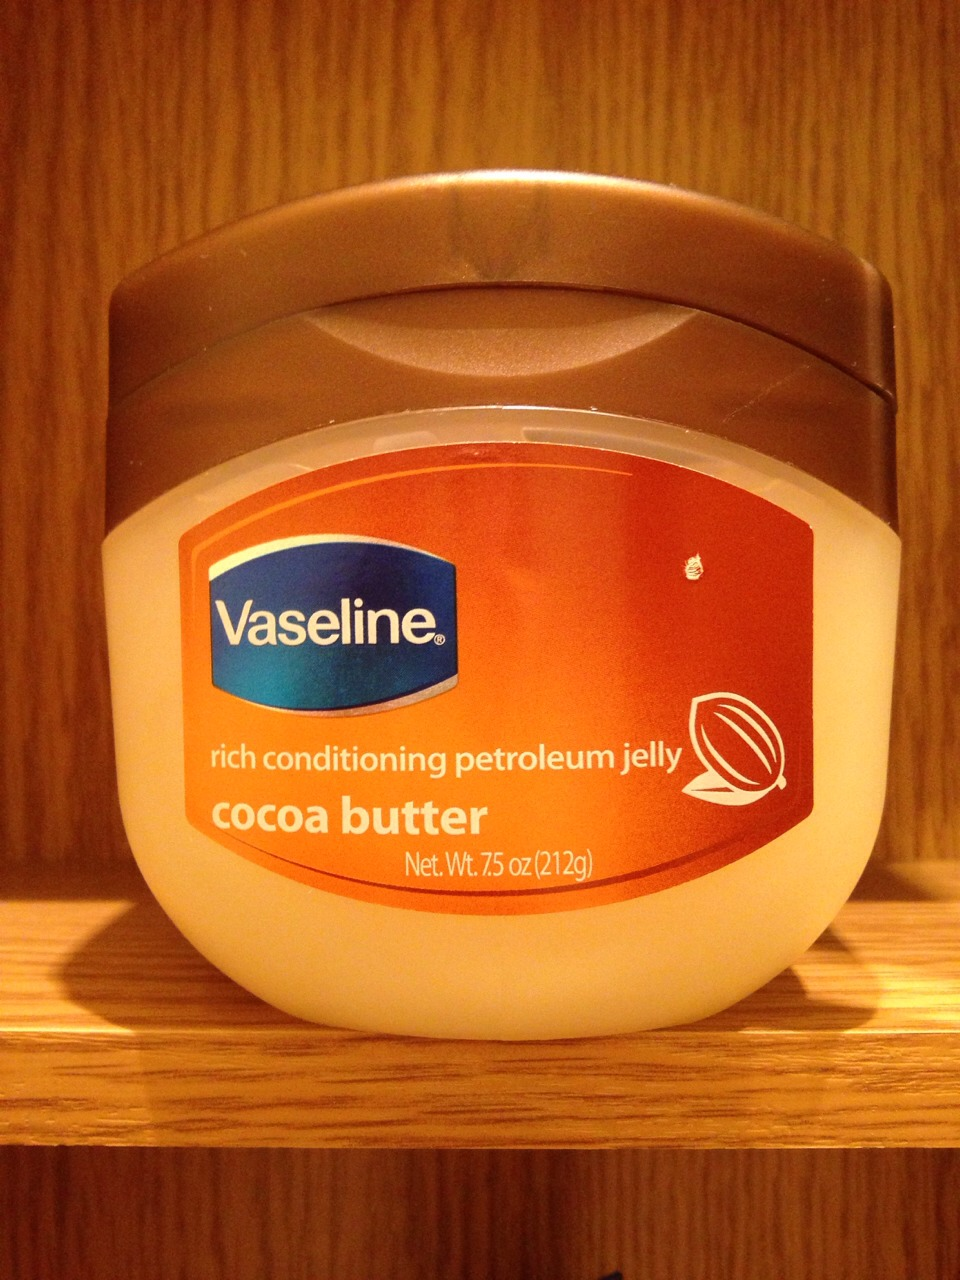 Vaseline makes the same effective product, with a cocoa butter scent! My mom uses it every night on her face after she puts on her lotion. She is 55 with no wrinkles :) it can also be used to make your eyelashes grow, when applied to your eyes at night and to soften the skin on your elbows!